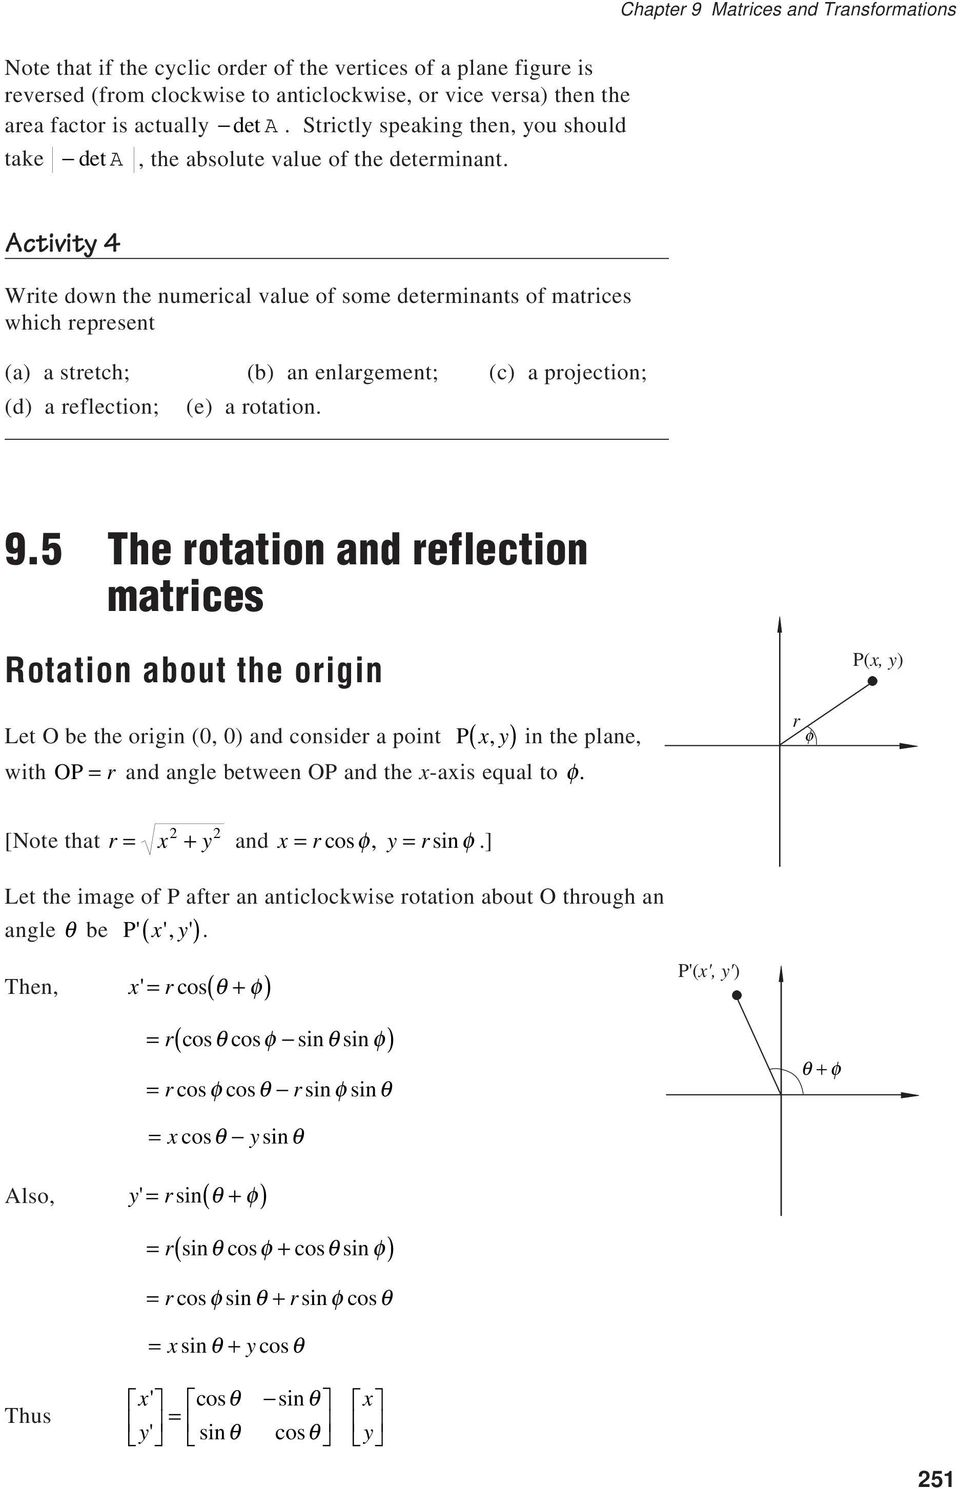 Activity 4 Write down the numerical value of some determinants of matrices which represent (a) a stretch; (b) an enlargement; (c) a projection; (d) a reflection; (e) a rotation. 9.